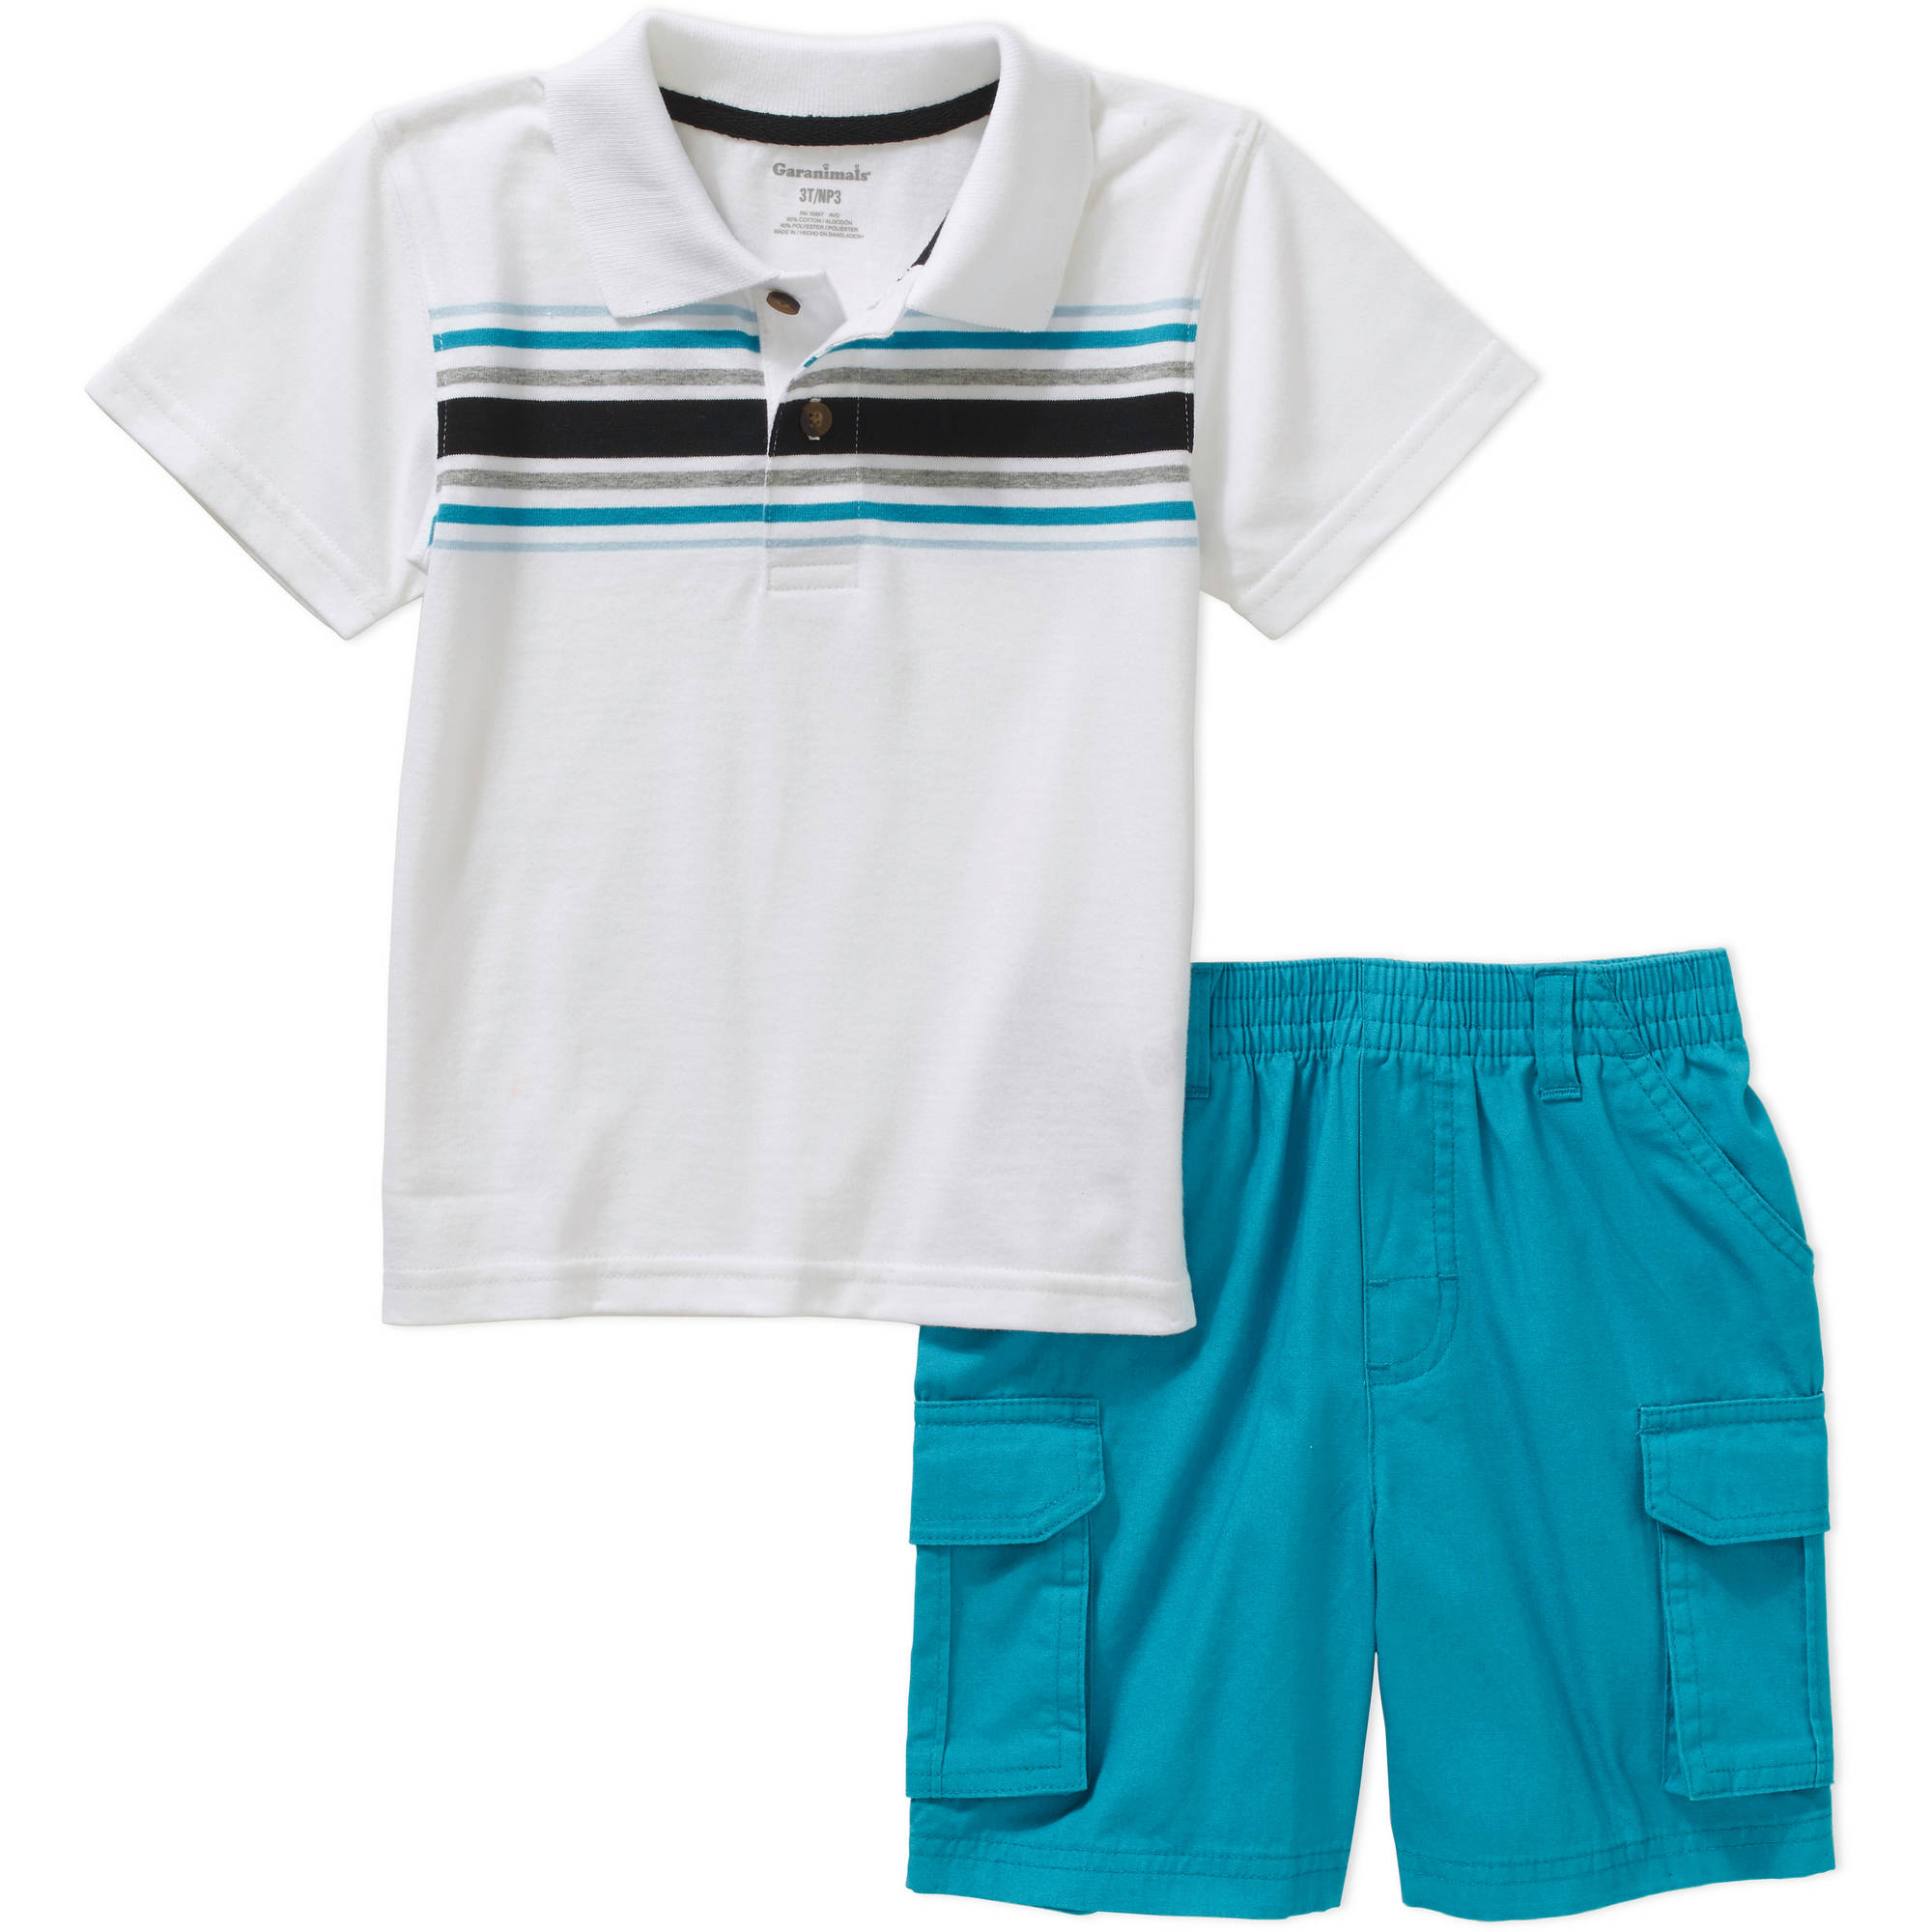 Garanimals Baby Toddler Boy Short Sleeve Stripe Polo & Cargo Shorts Outfit Set